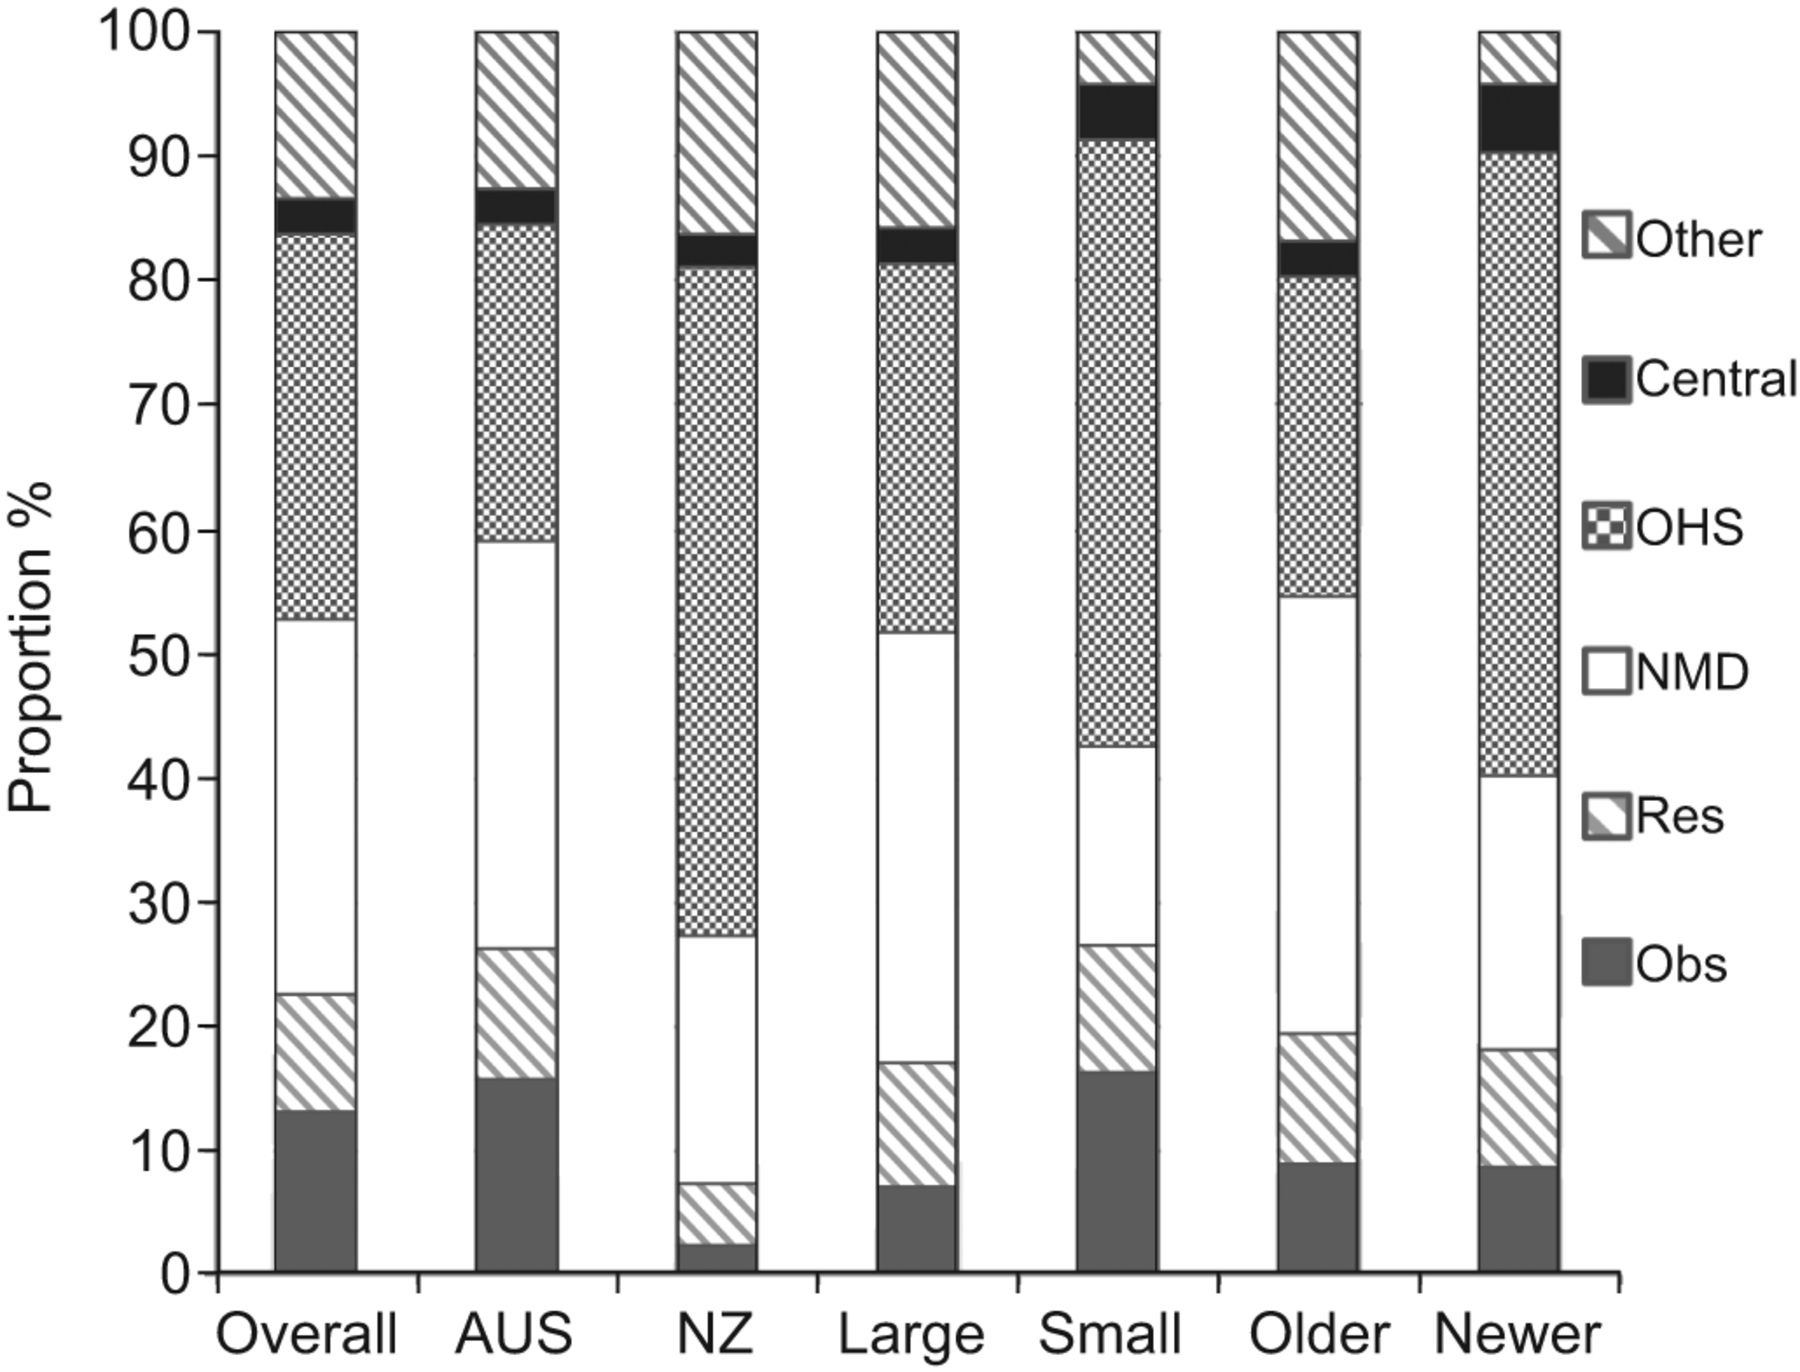 Home mechanical ventilation in Australia and New Zealand